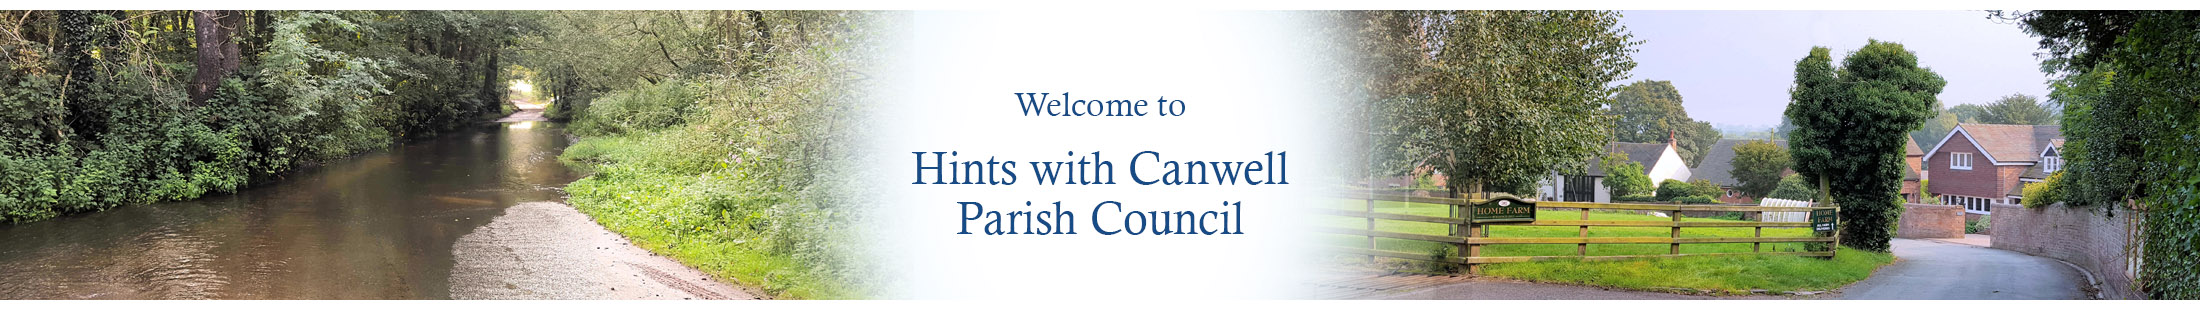 Header Image for Hints with Canwell Parish Council